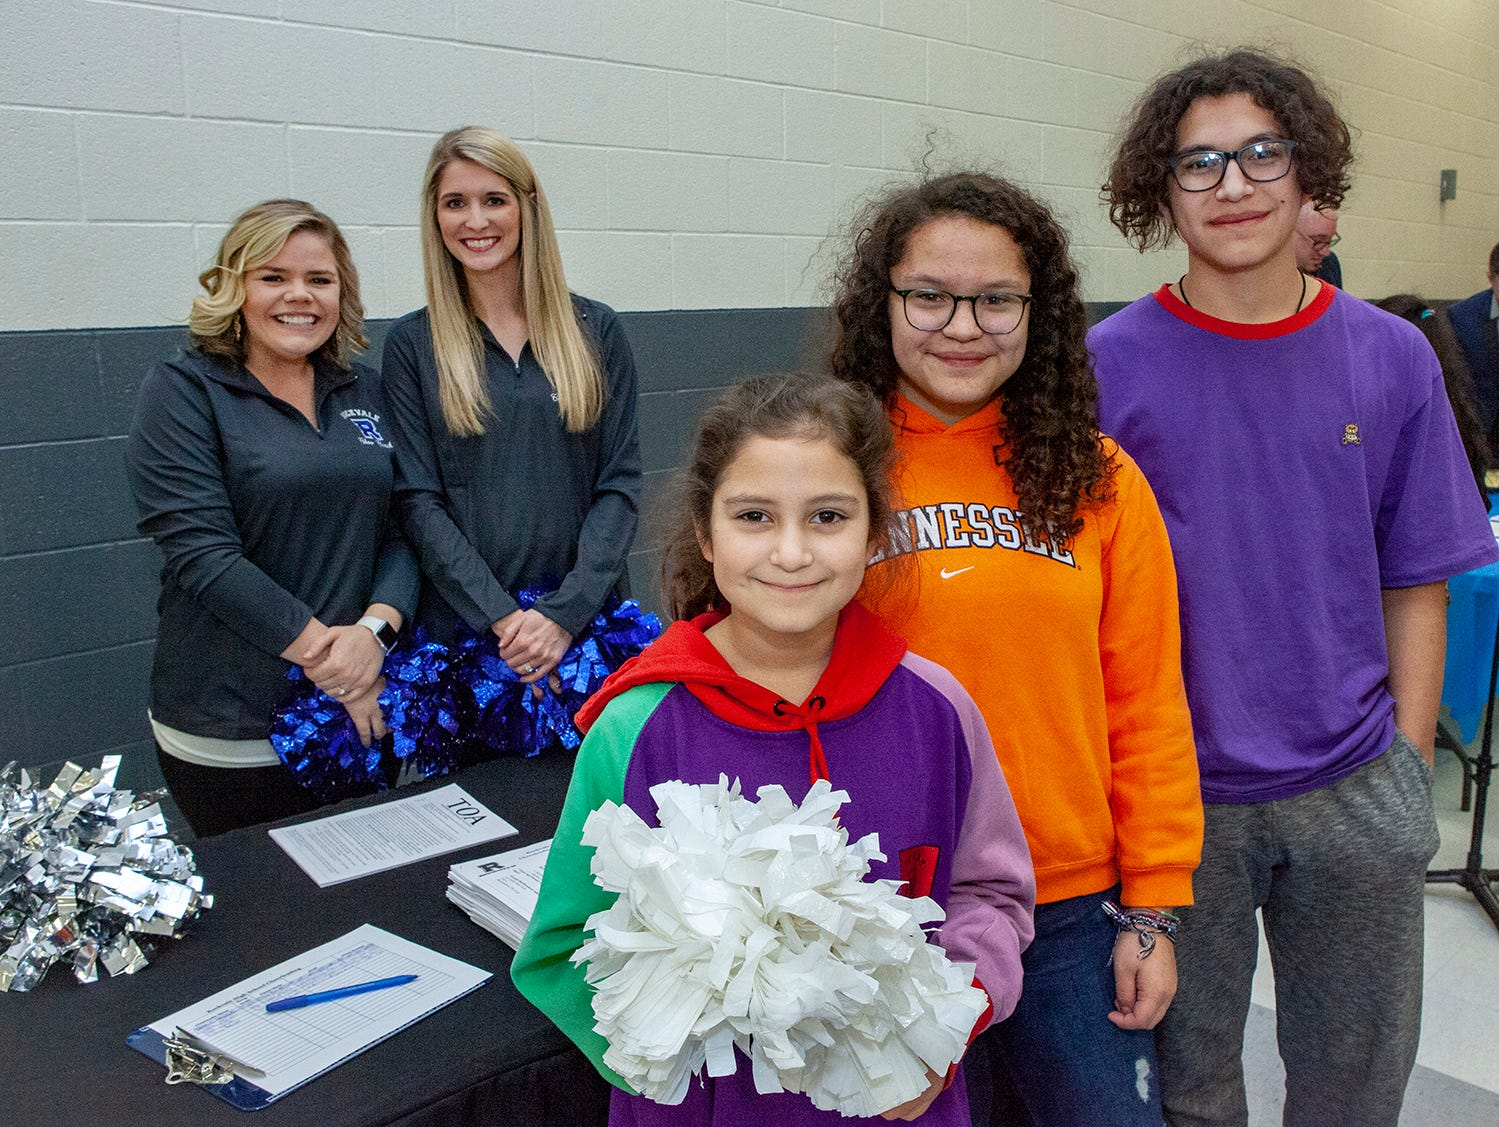 Seen at the Rockvale High School open house March 7, 2019. Alinda, Adela and Jared Garcia met with cheer coaches and teachers Dana Par, left, and Amber Greene.